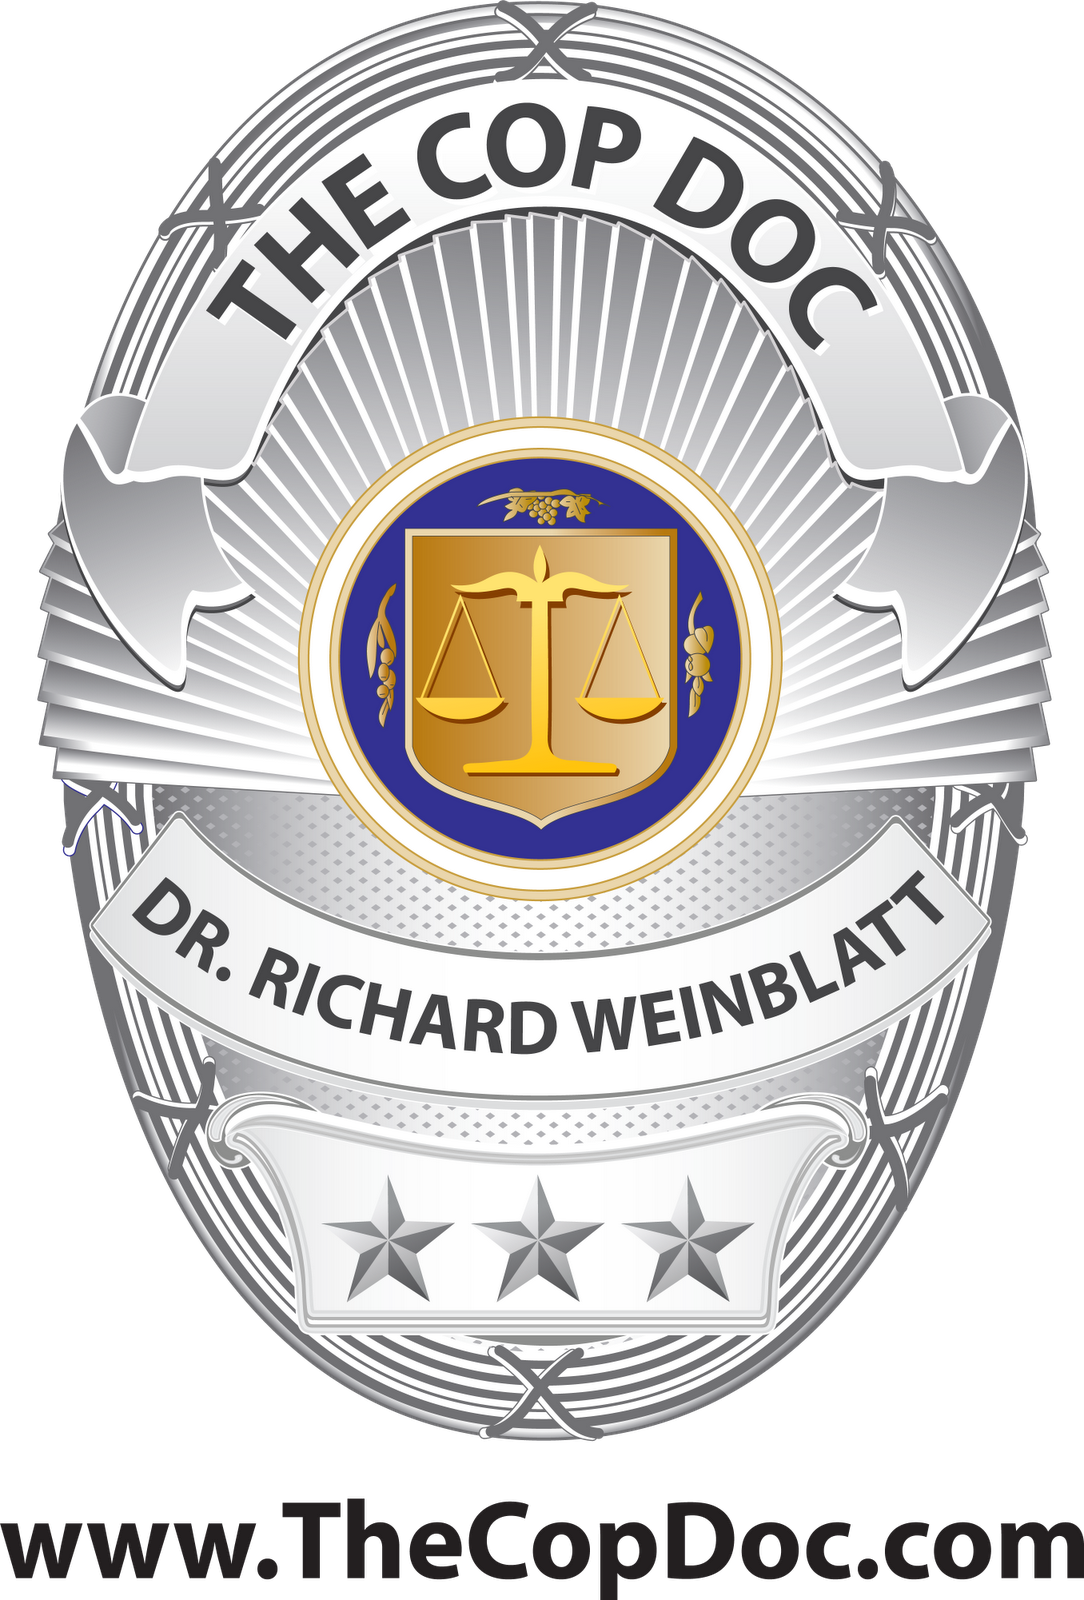 Dr Richard Weinblatt The Cop Doc World Premiere Of New